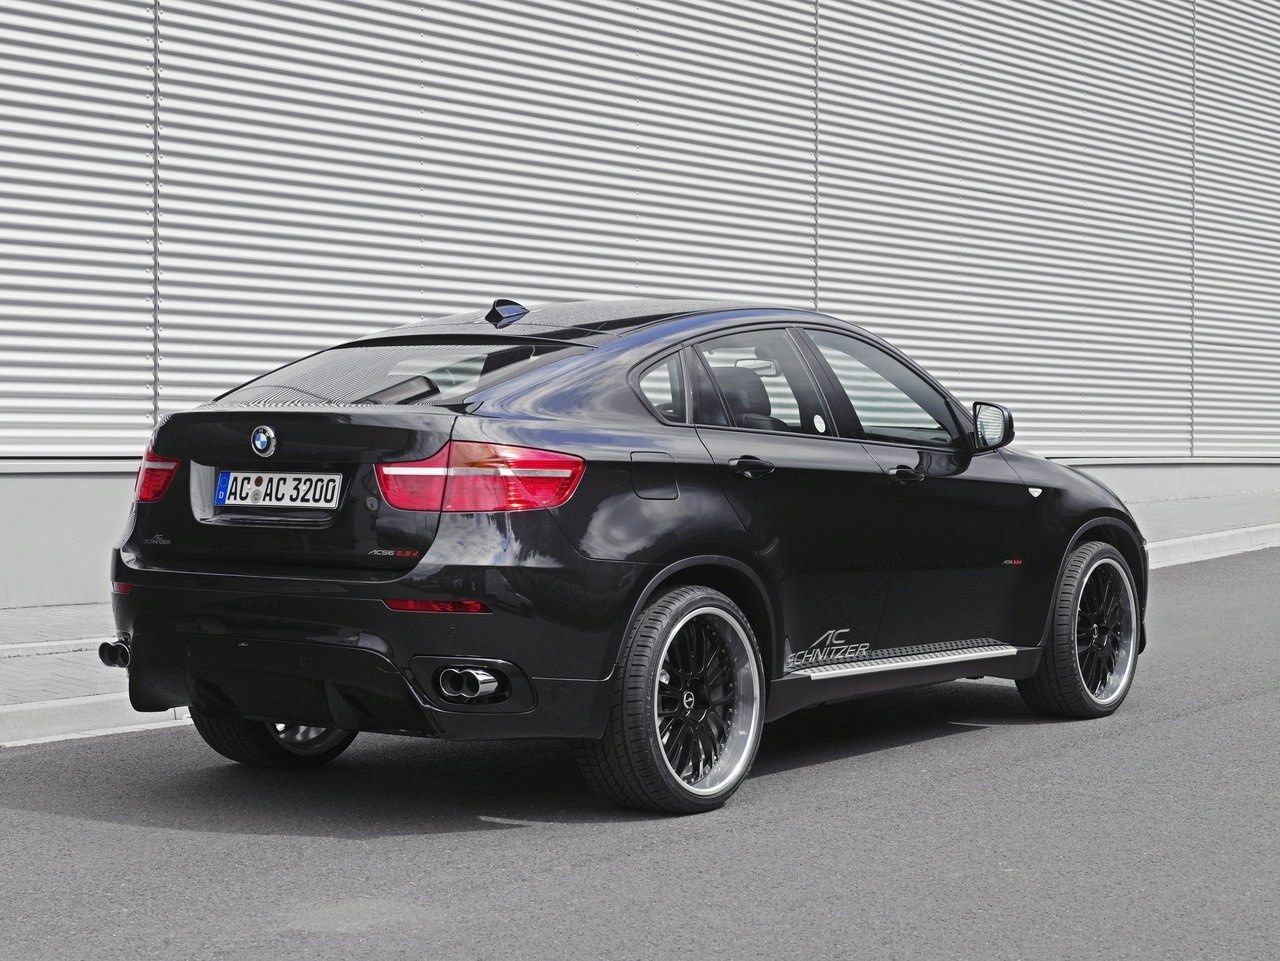 ac schnitzer geeft bmw x6 een beurt. Black Bedroom Furniture Sets. Home Design Ideas